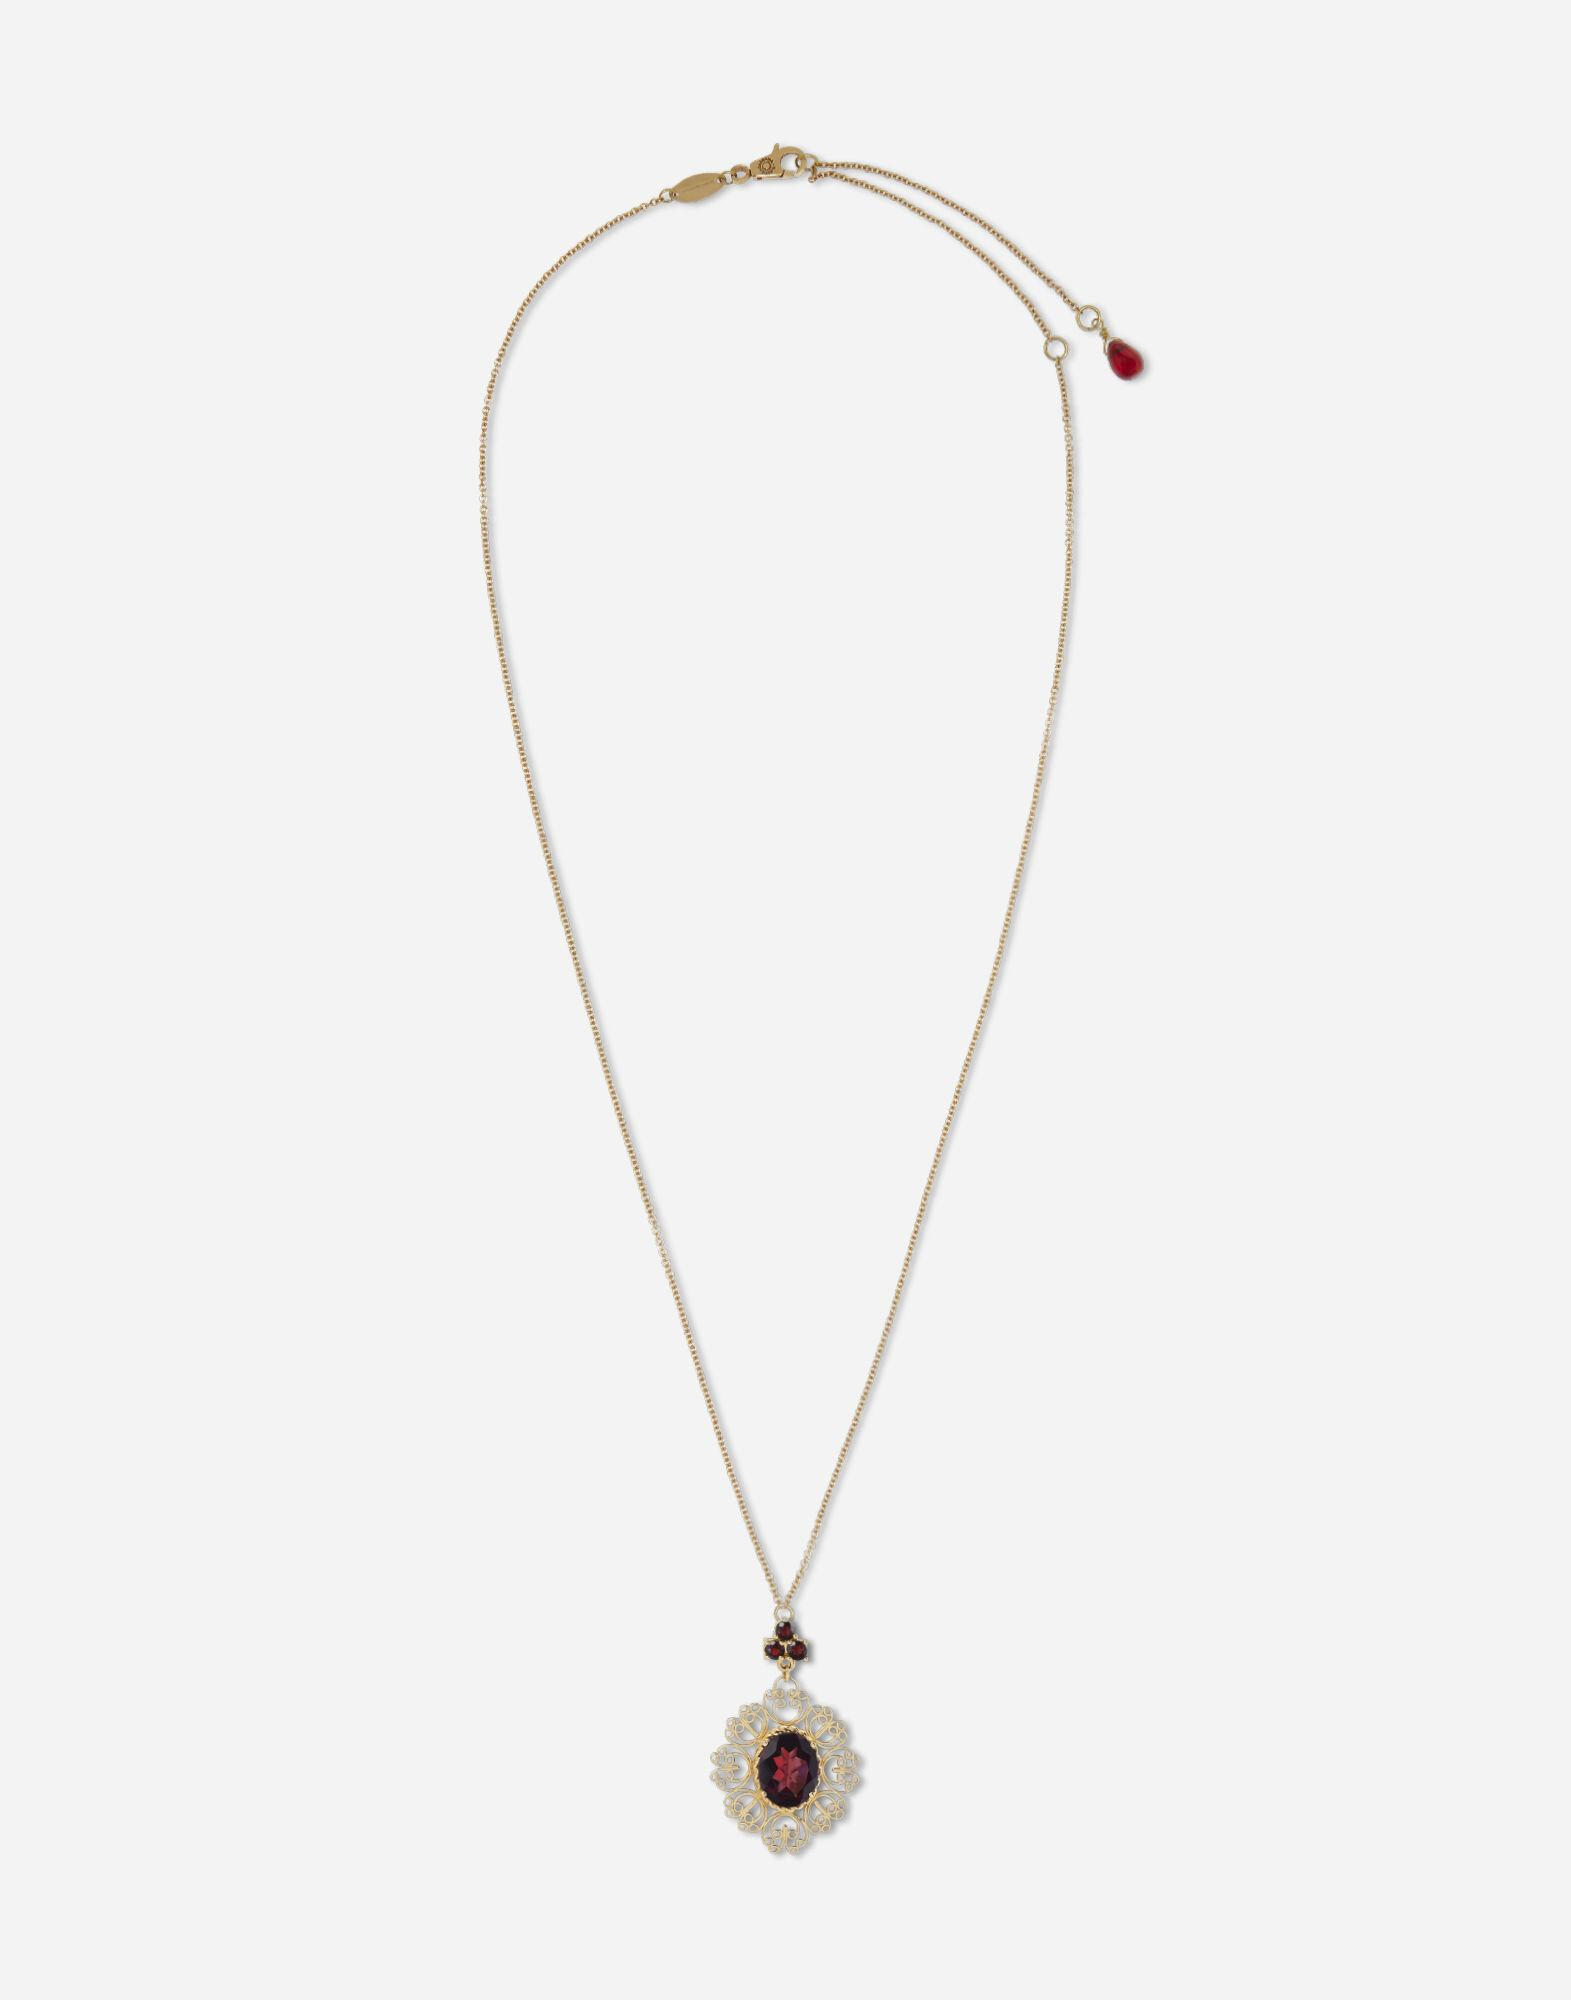 Barocco pendant in yellow gold with rhodolite garanets